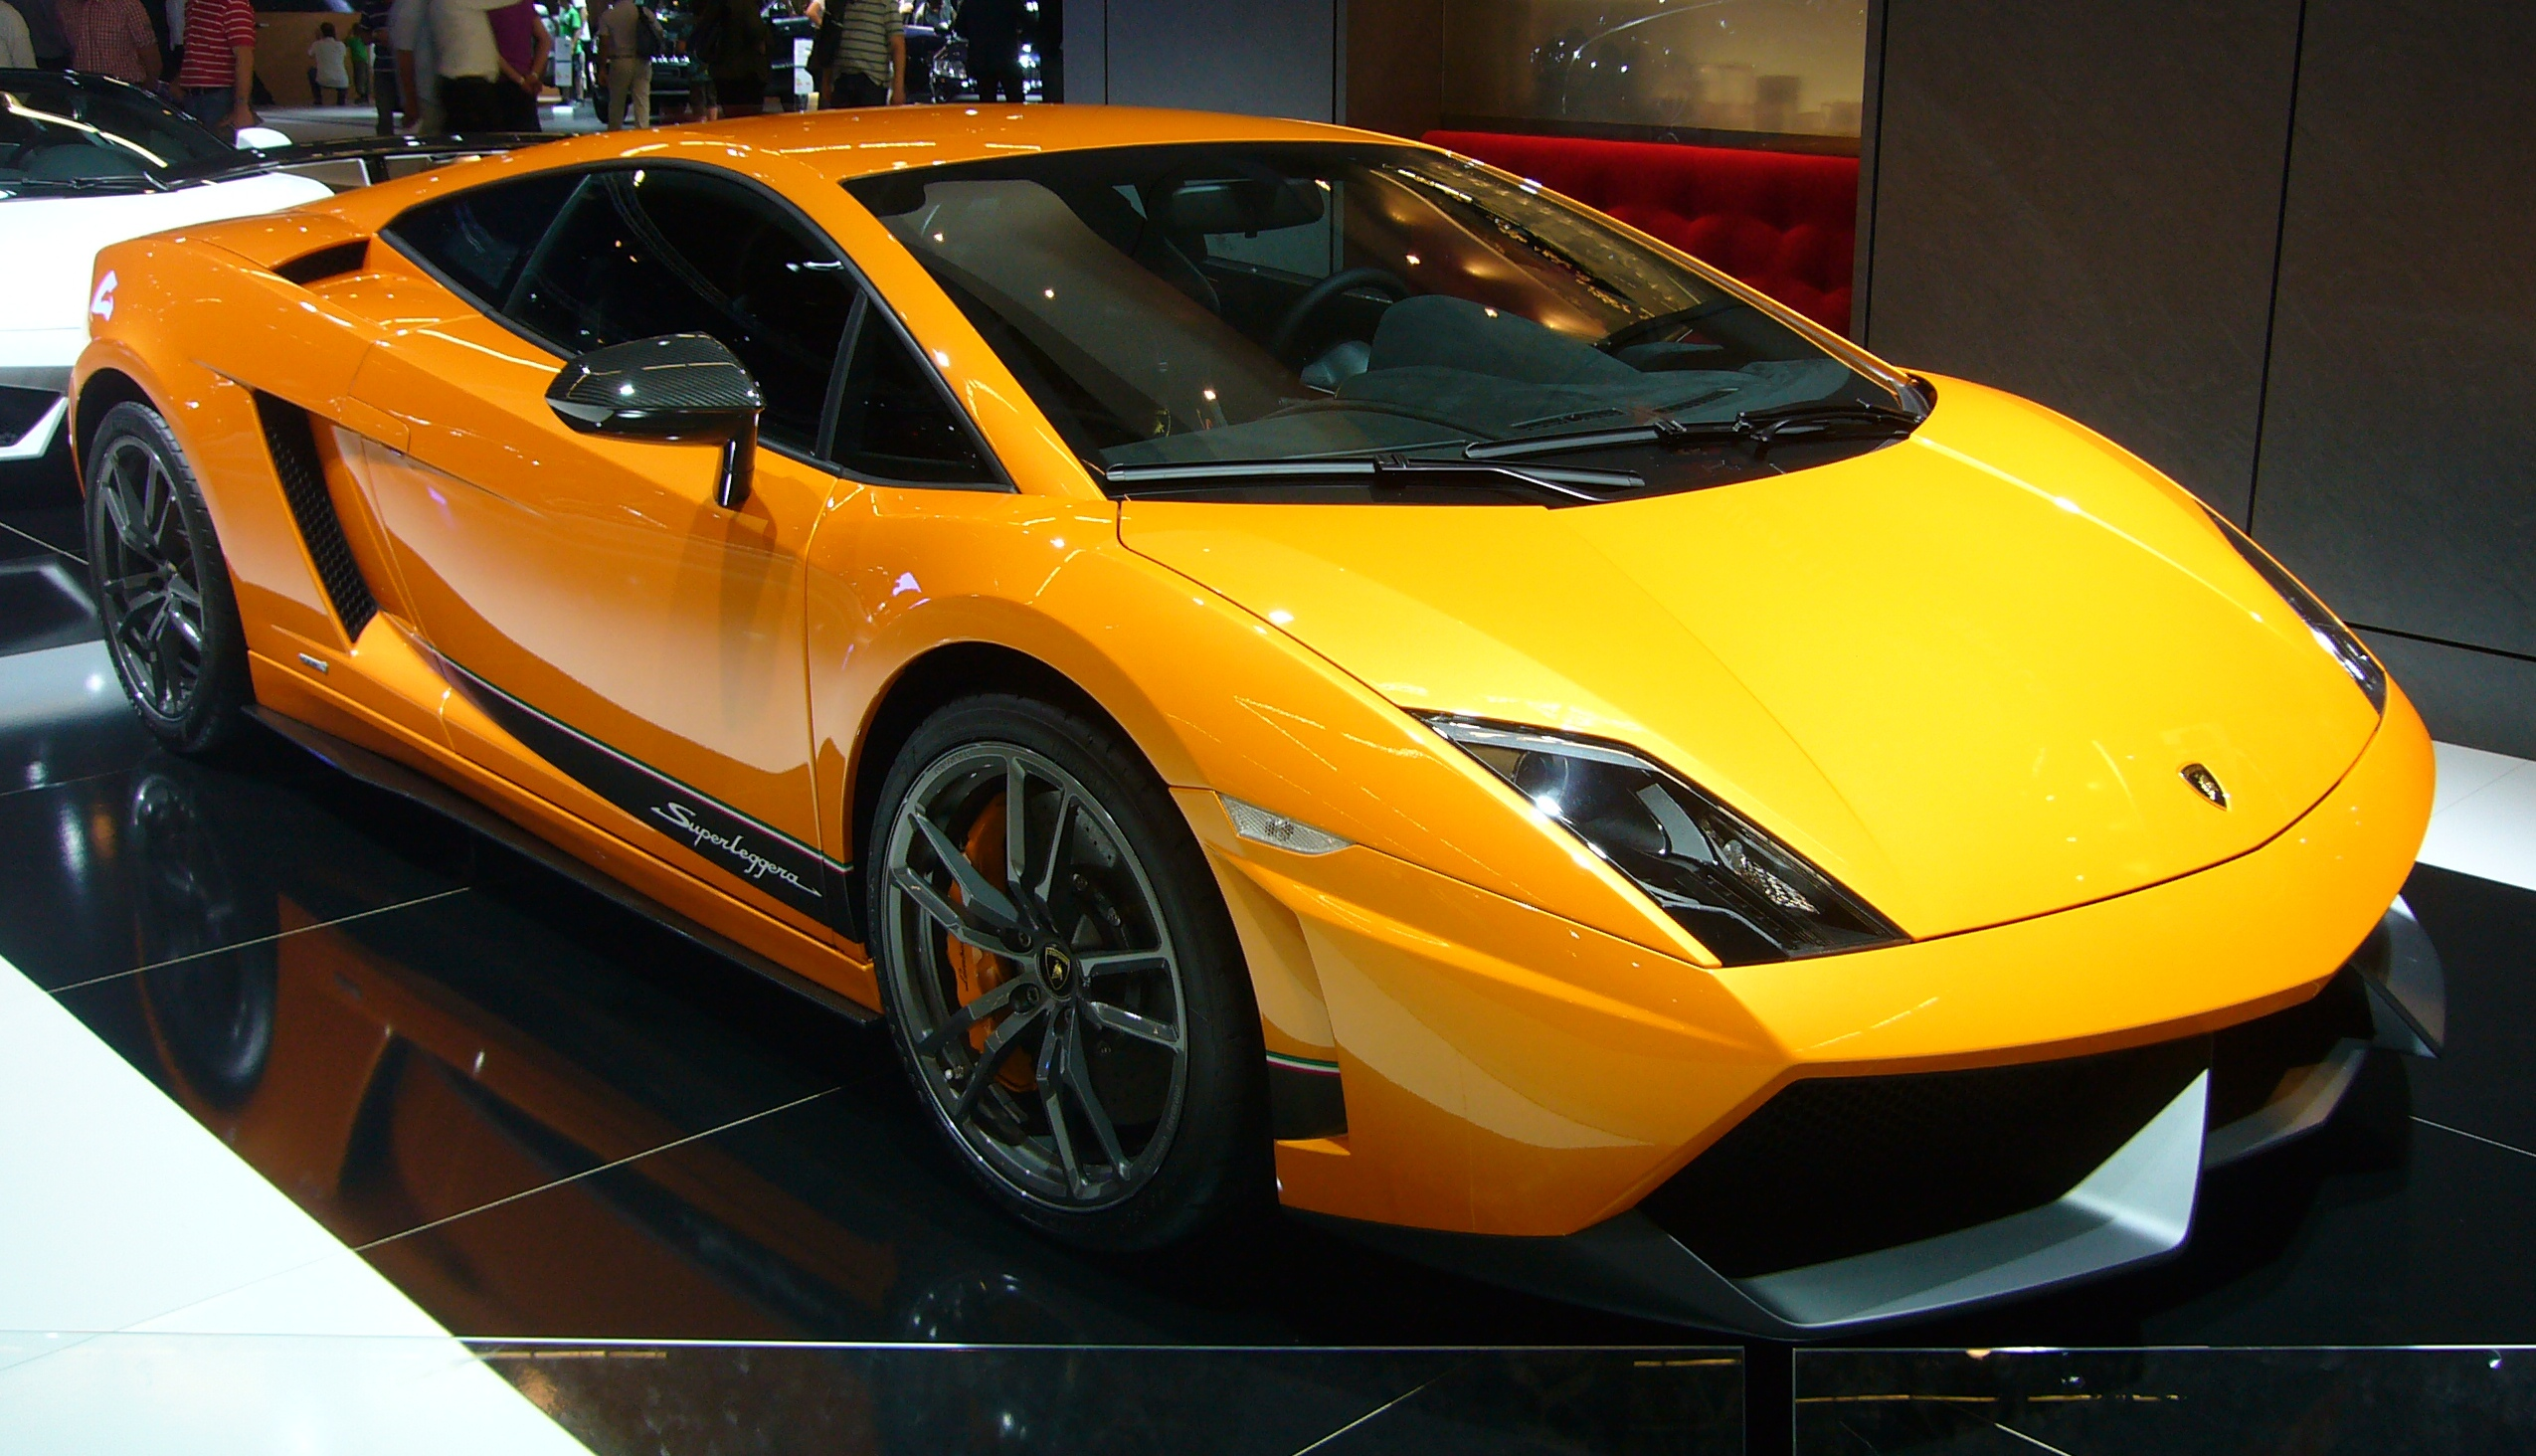 Wonderful File:Lamborghini Gallardo LP570 4 Superleggera (front Quarter)